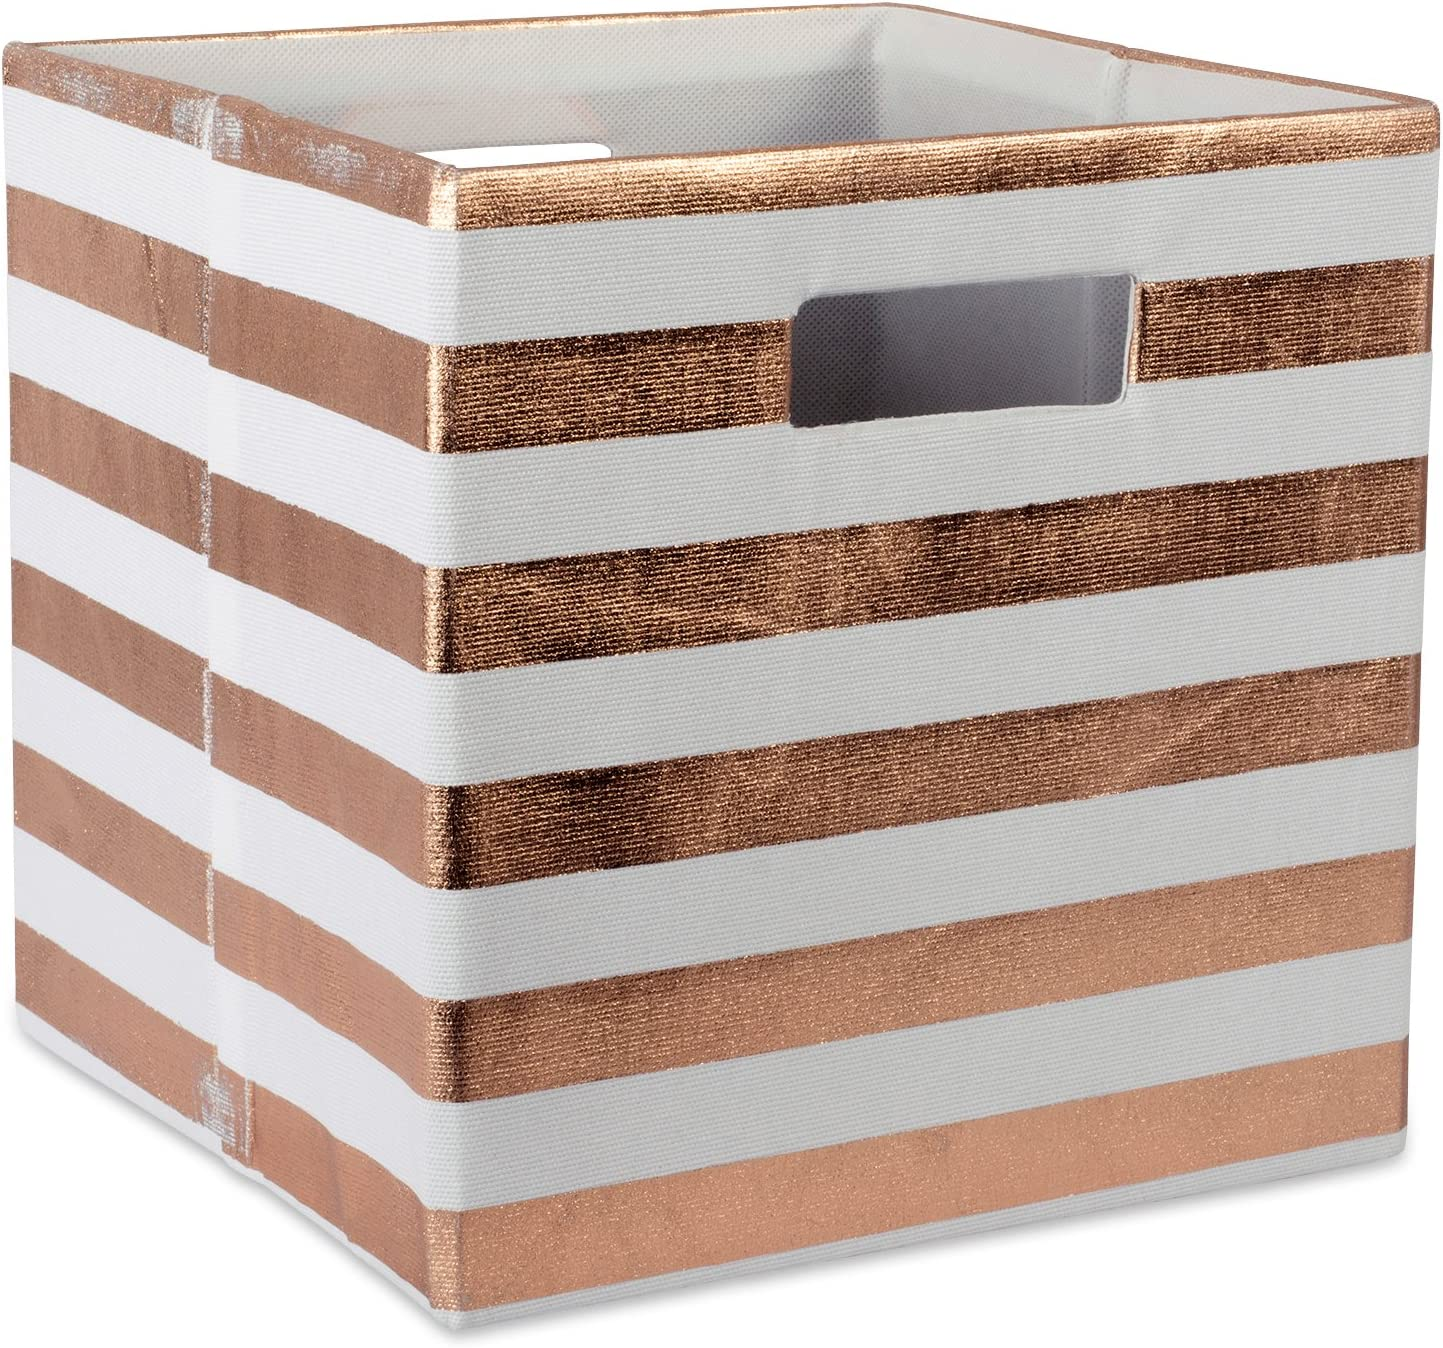 DII Foldable Fabric Storage Container 11 x 11 x 11, Stripe Copper, Small